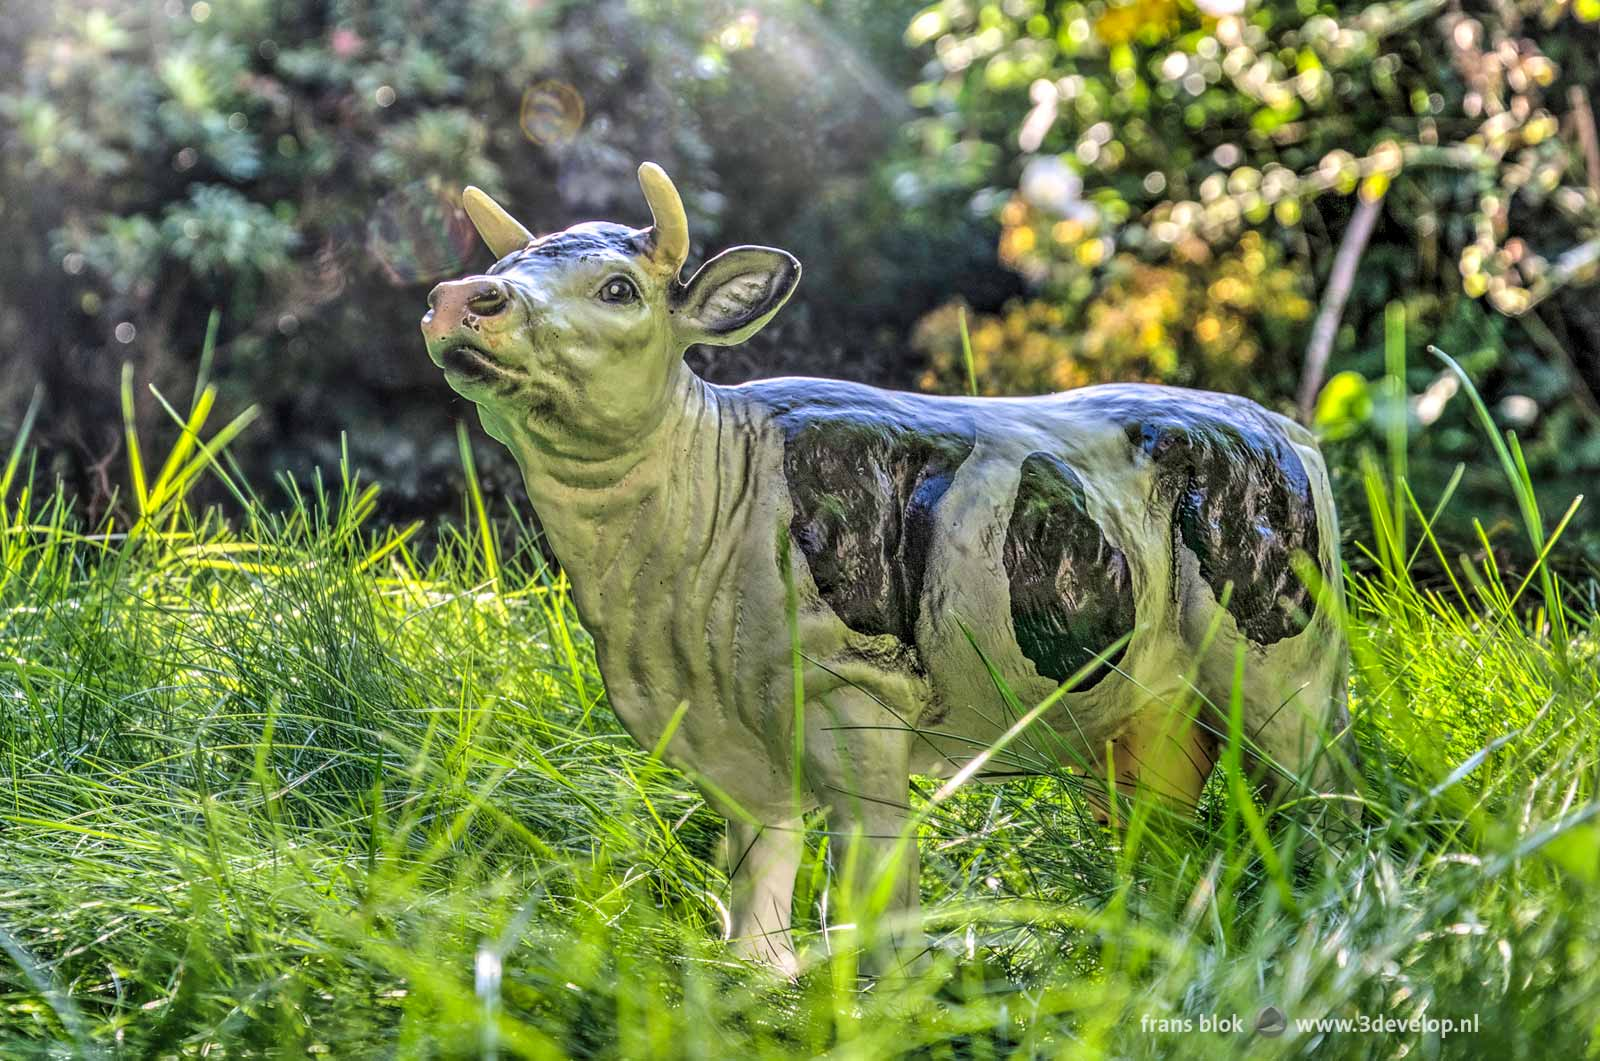 Stone sculpture of a cow in a city garden with tall grass